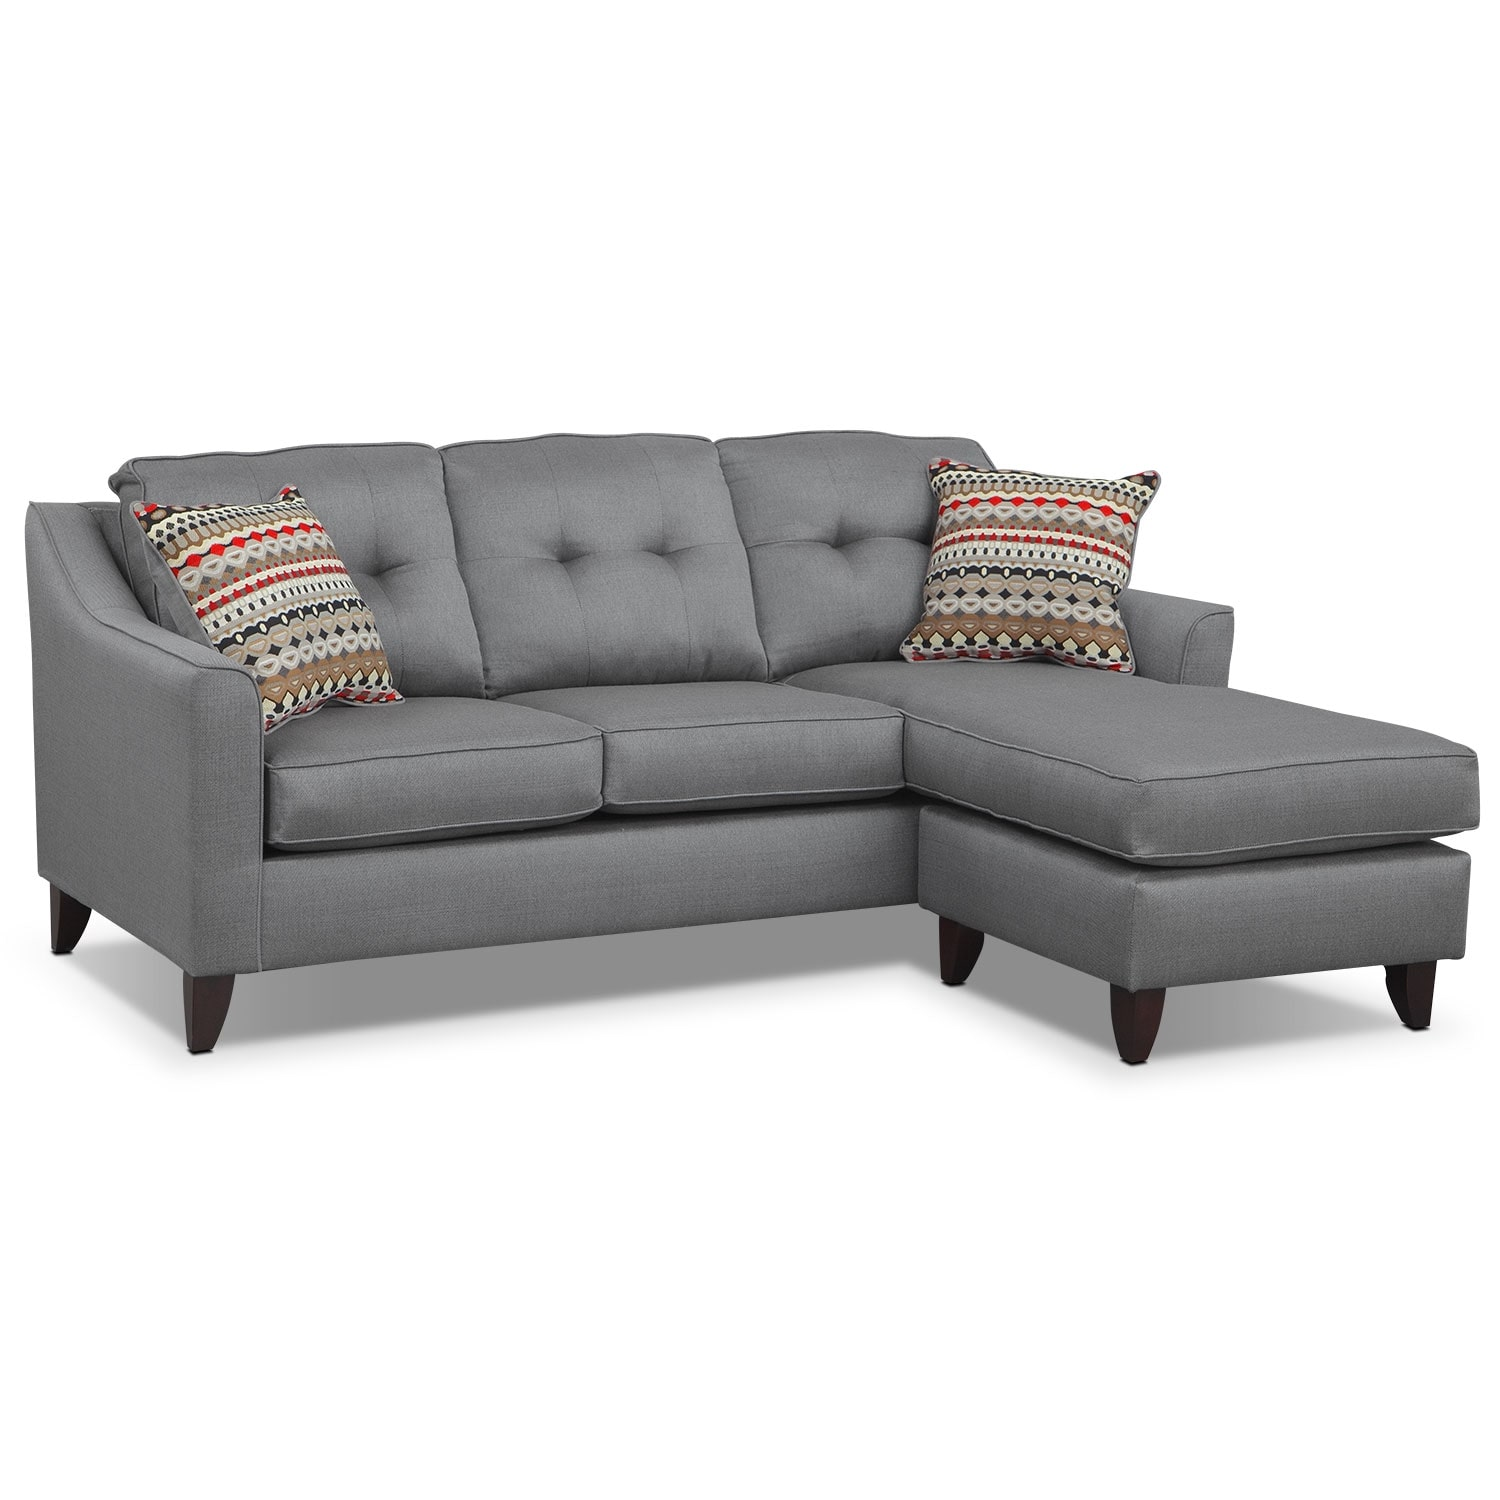 Marco Chaise Sofa - Gray